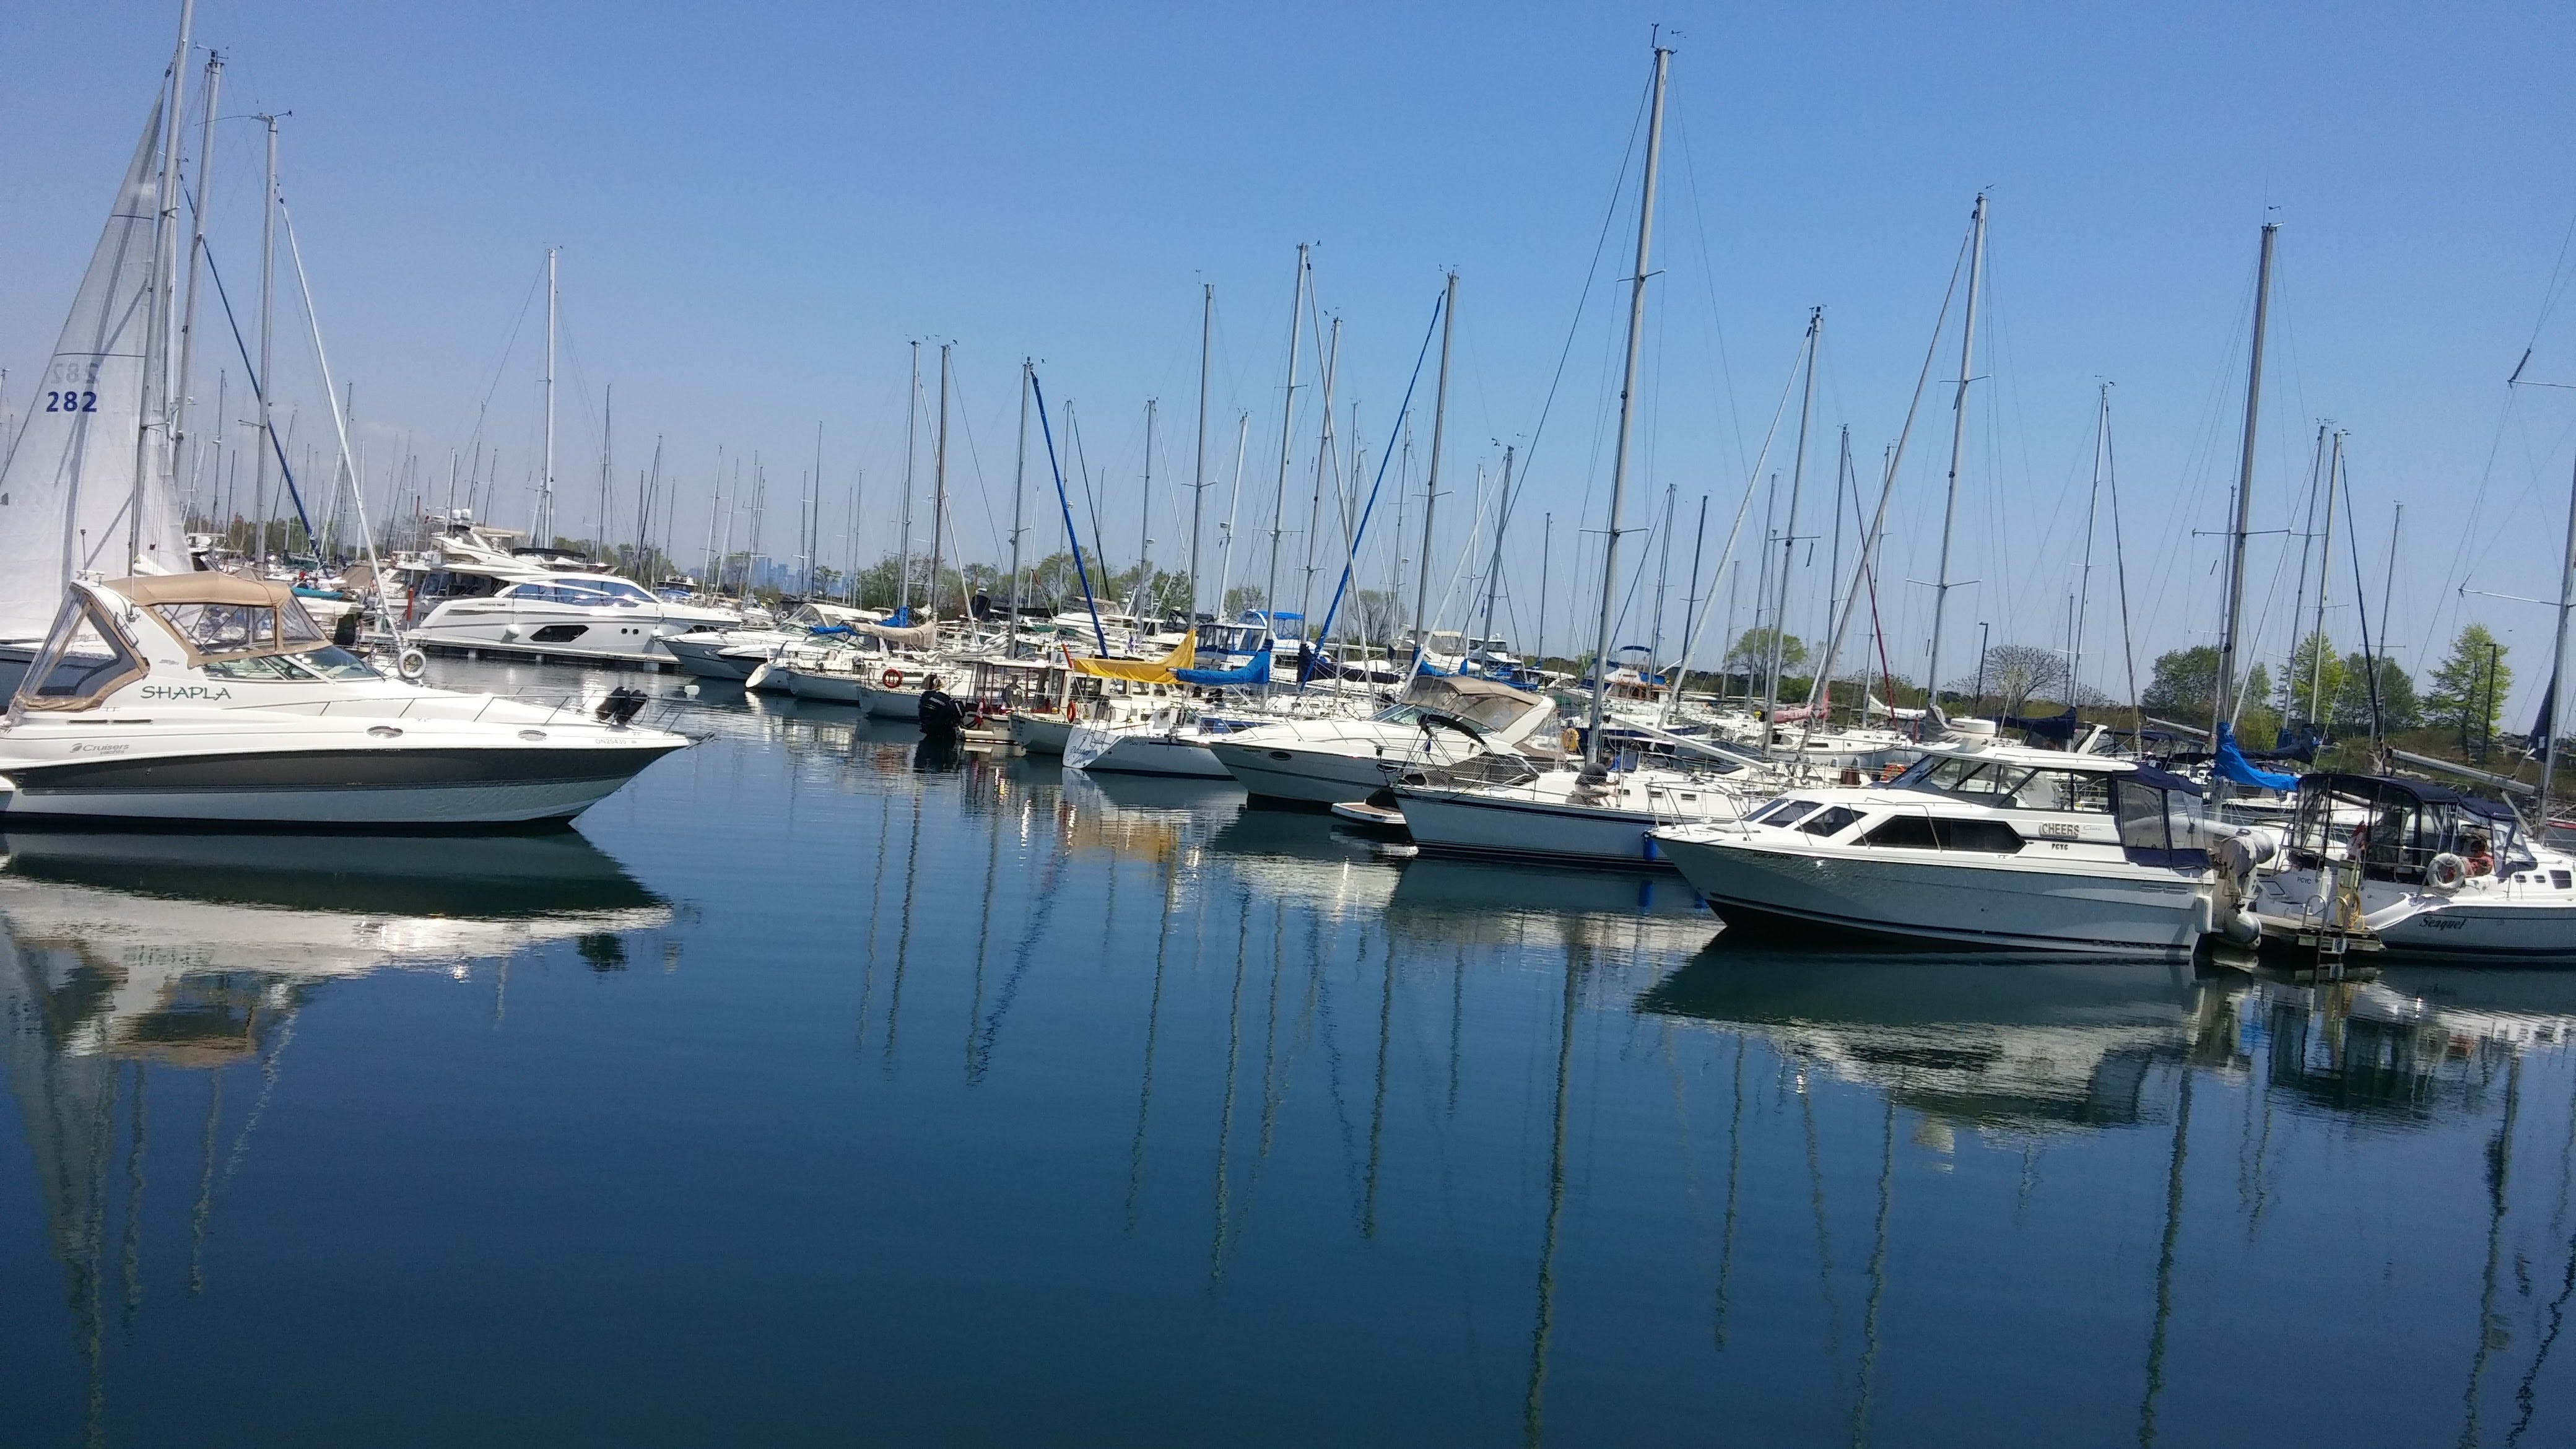 Free stock photo of boats, harbour, sailboats, water